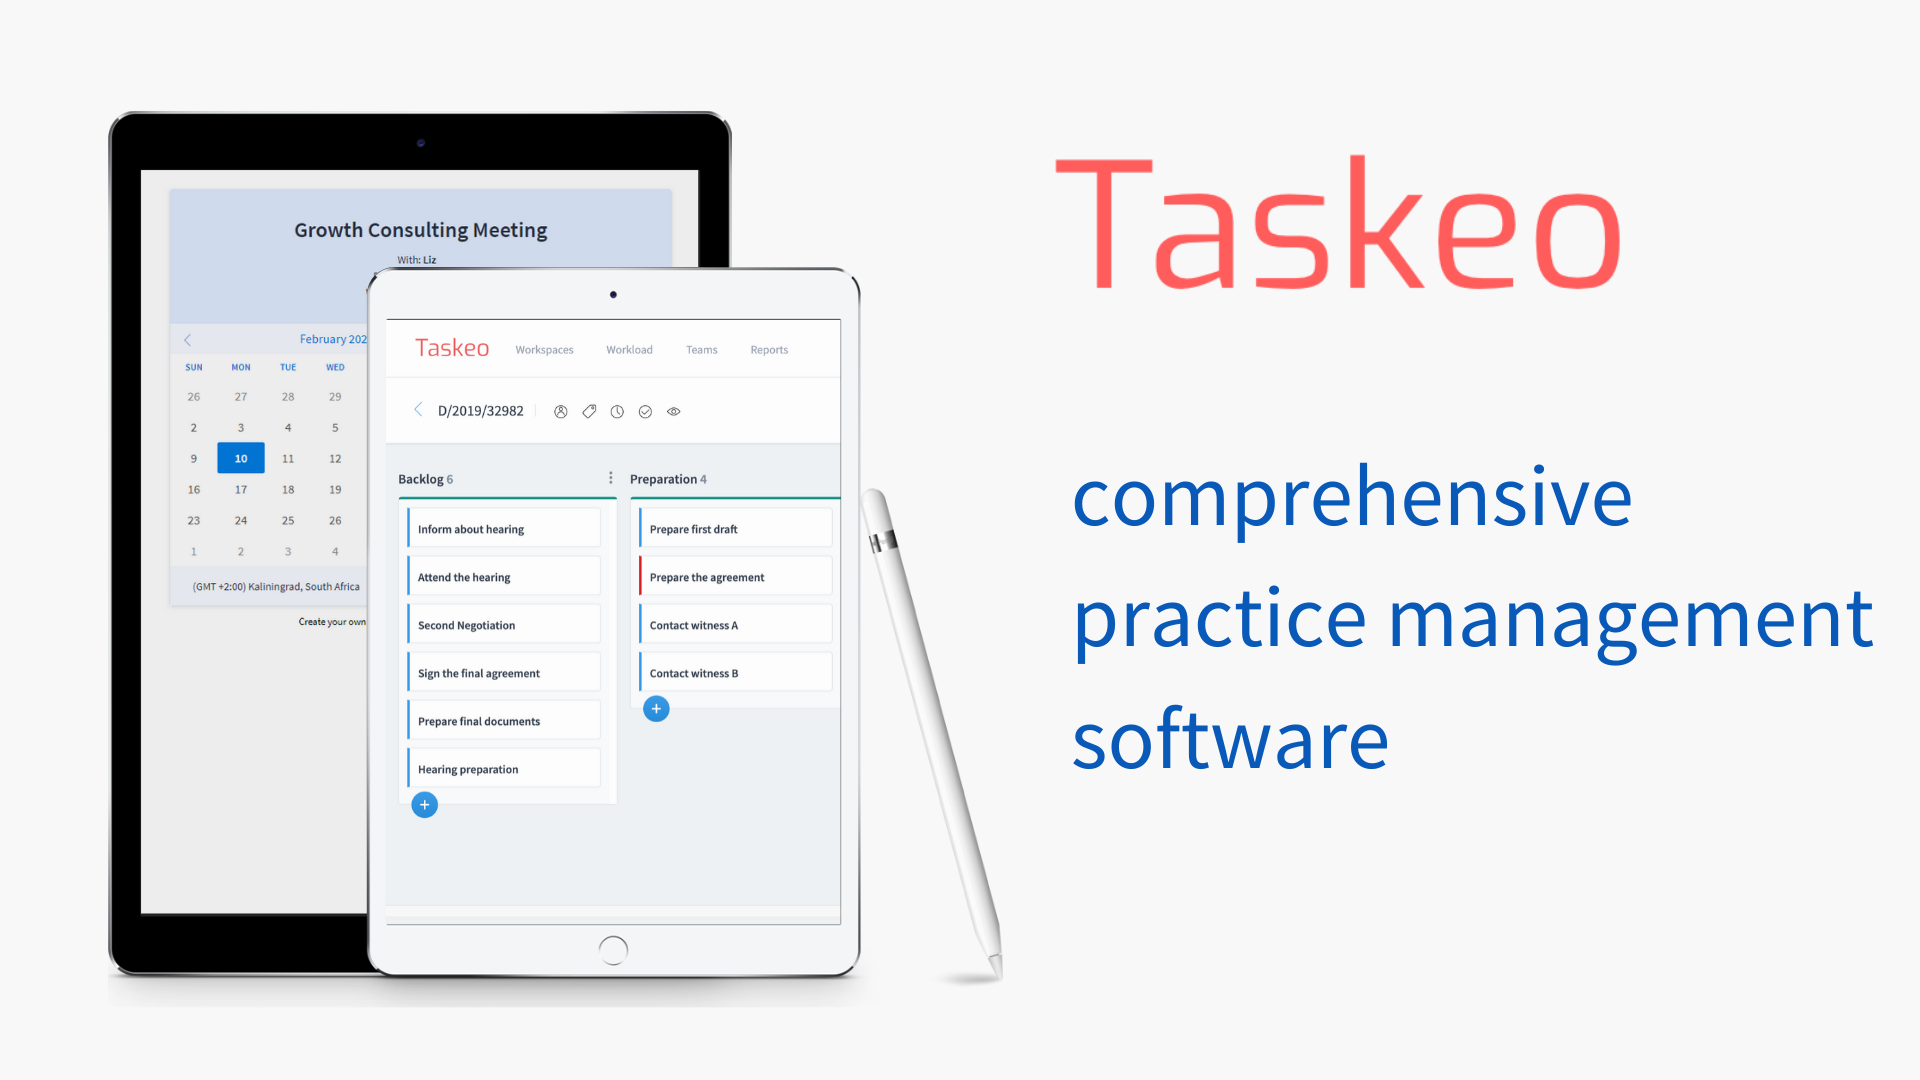 5 Benefits of Using Practice Management Software